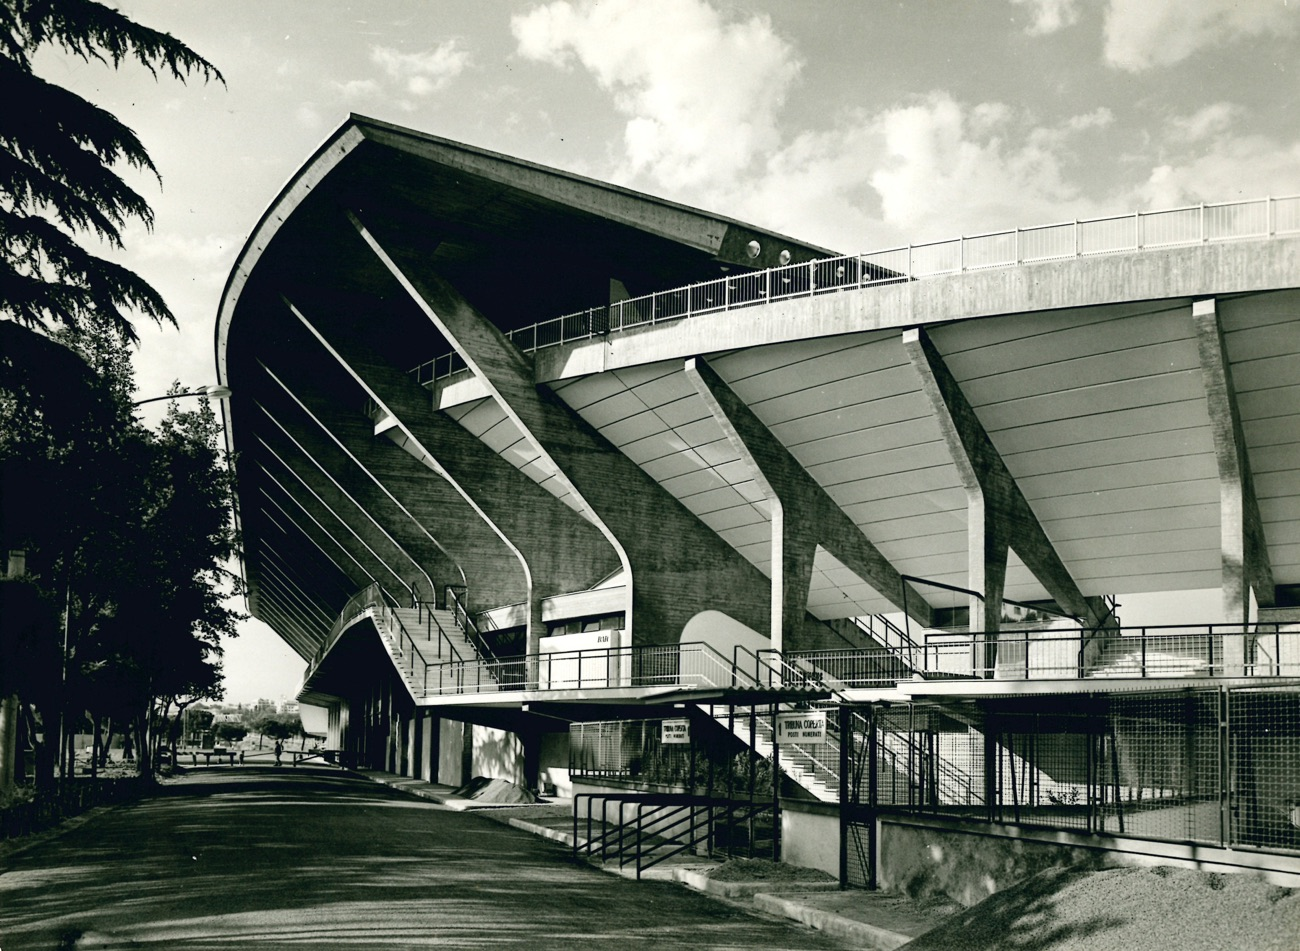 Black and white photograph showing the dramatic external concrete curvature of the Flaminio Stadium